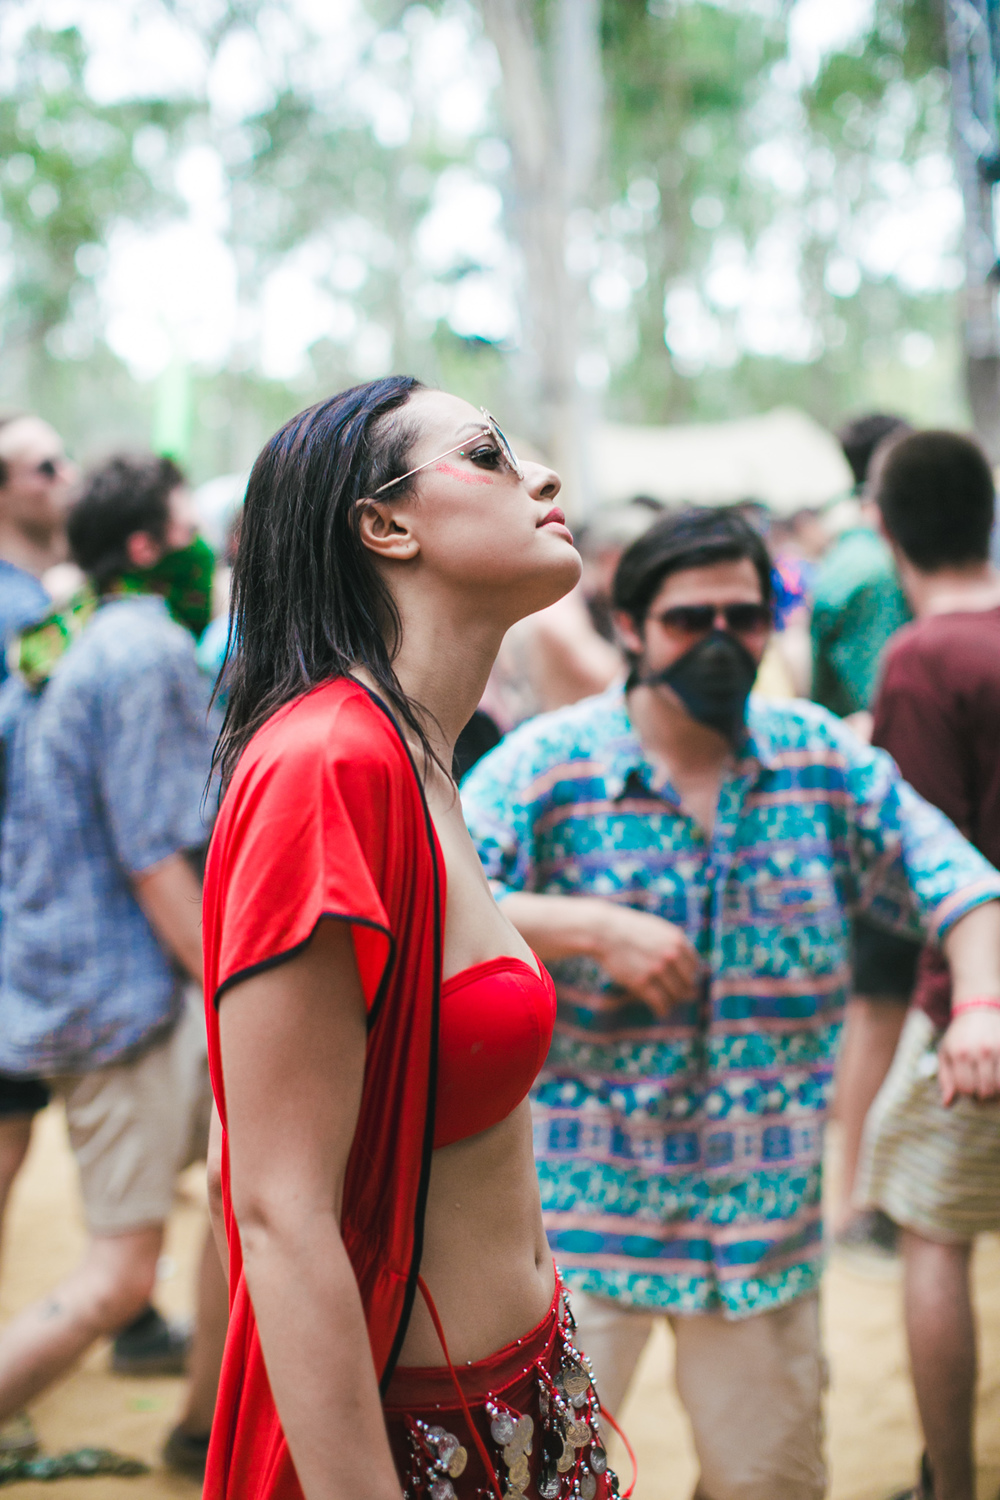 VOENA_STRAWBERRY_FIELDS_FESTIVAL_2014_PHOTOS_DOOF_AUSTRALIA-38.jpg